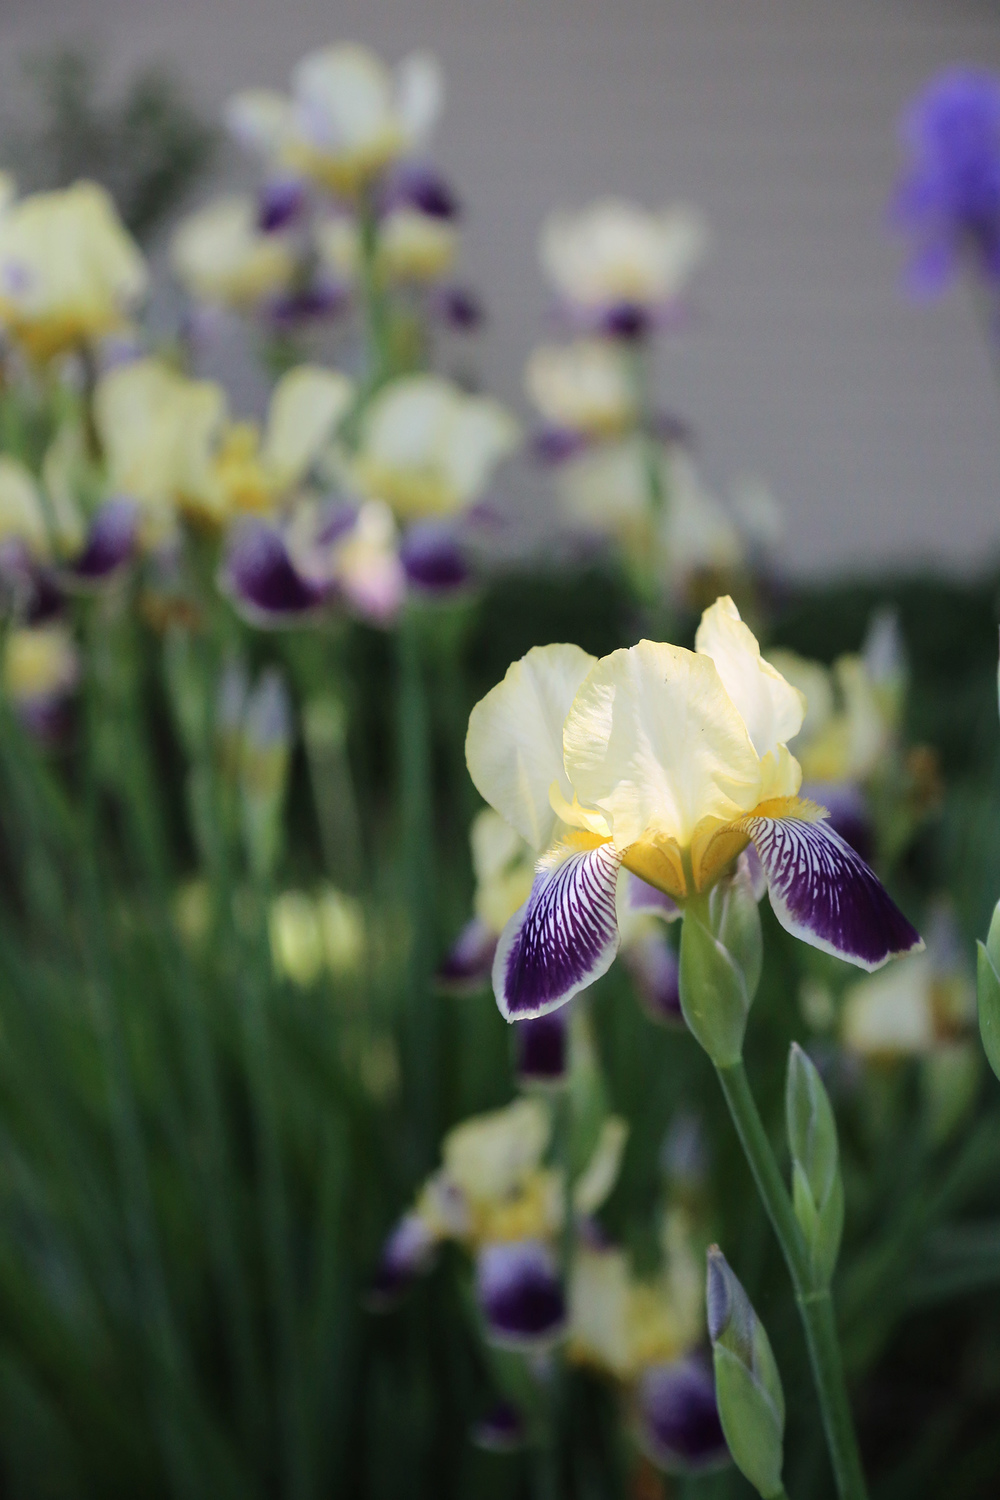 my friend has the loveliest bunch of irises growing in her backyard.